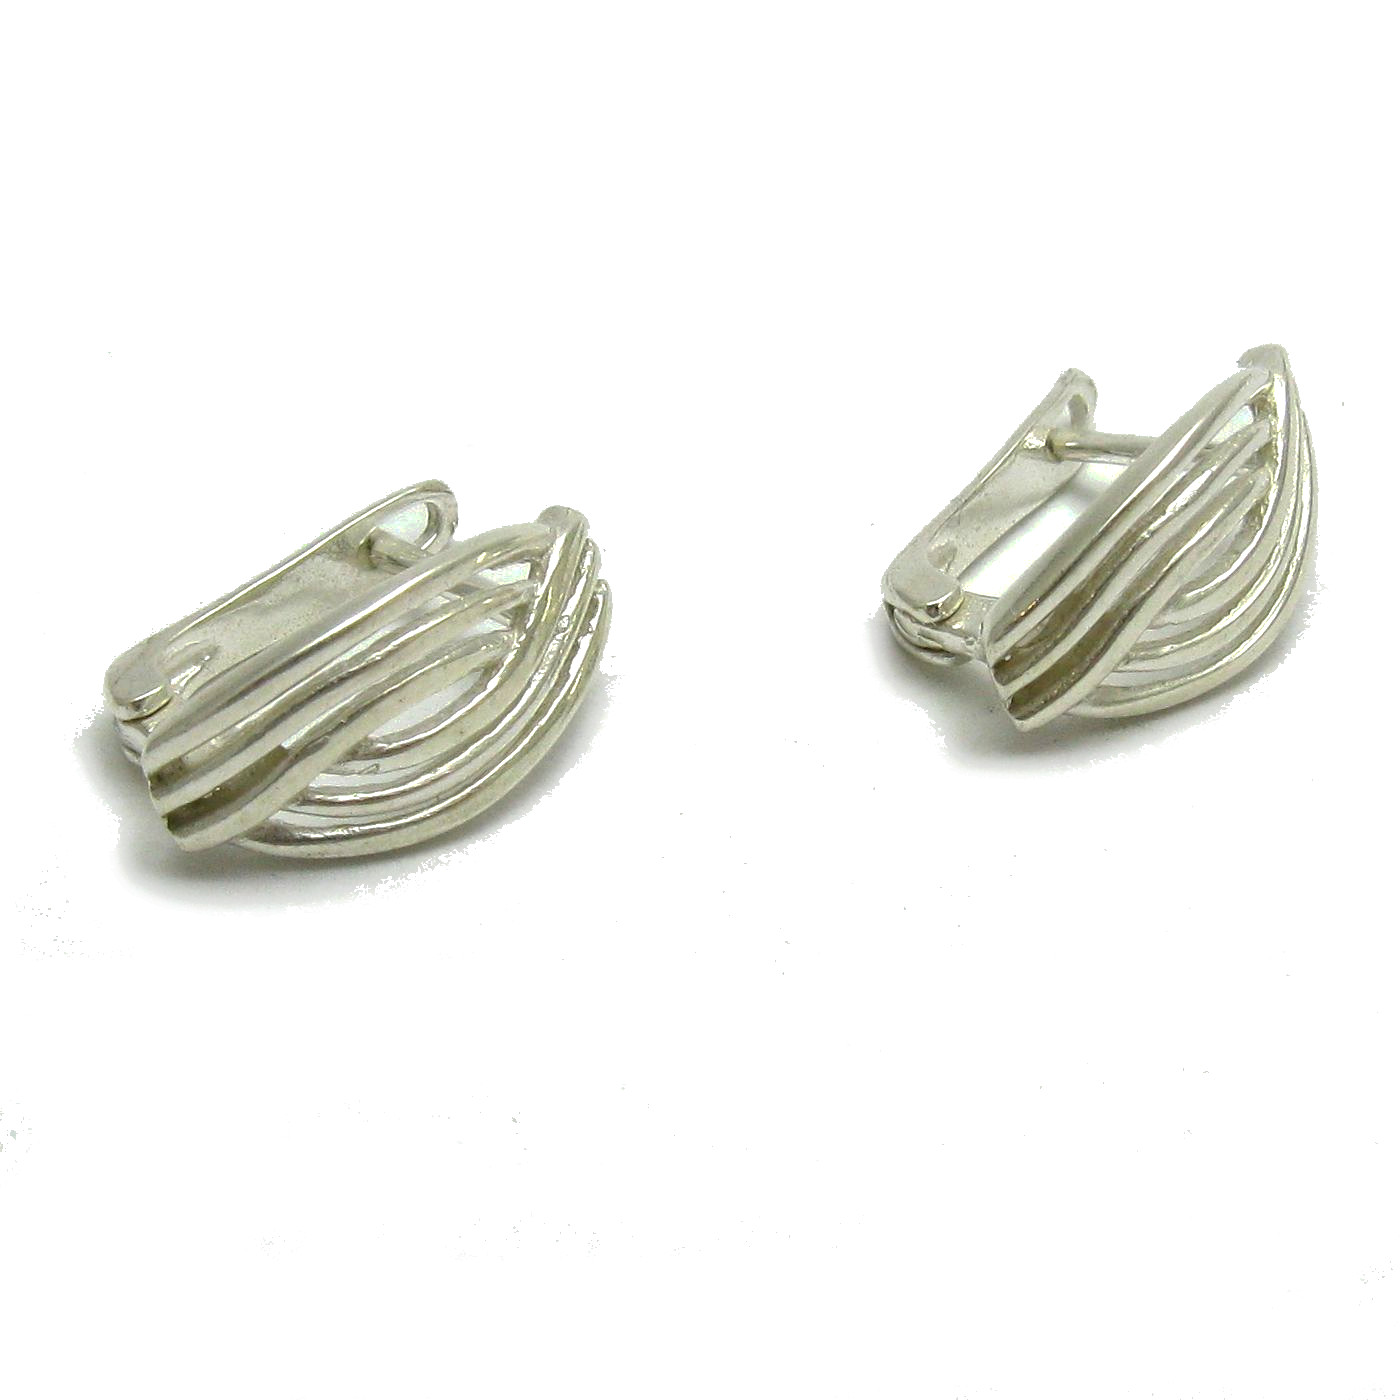 Silver earrings - E000717